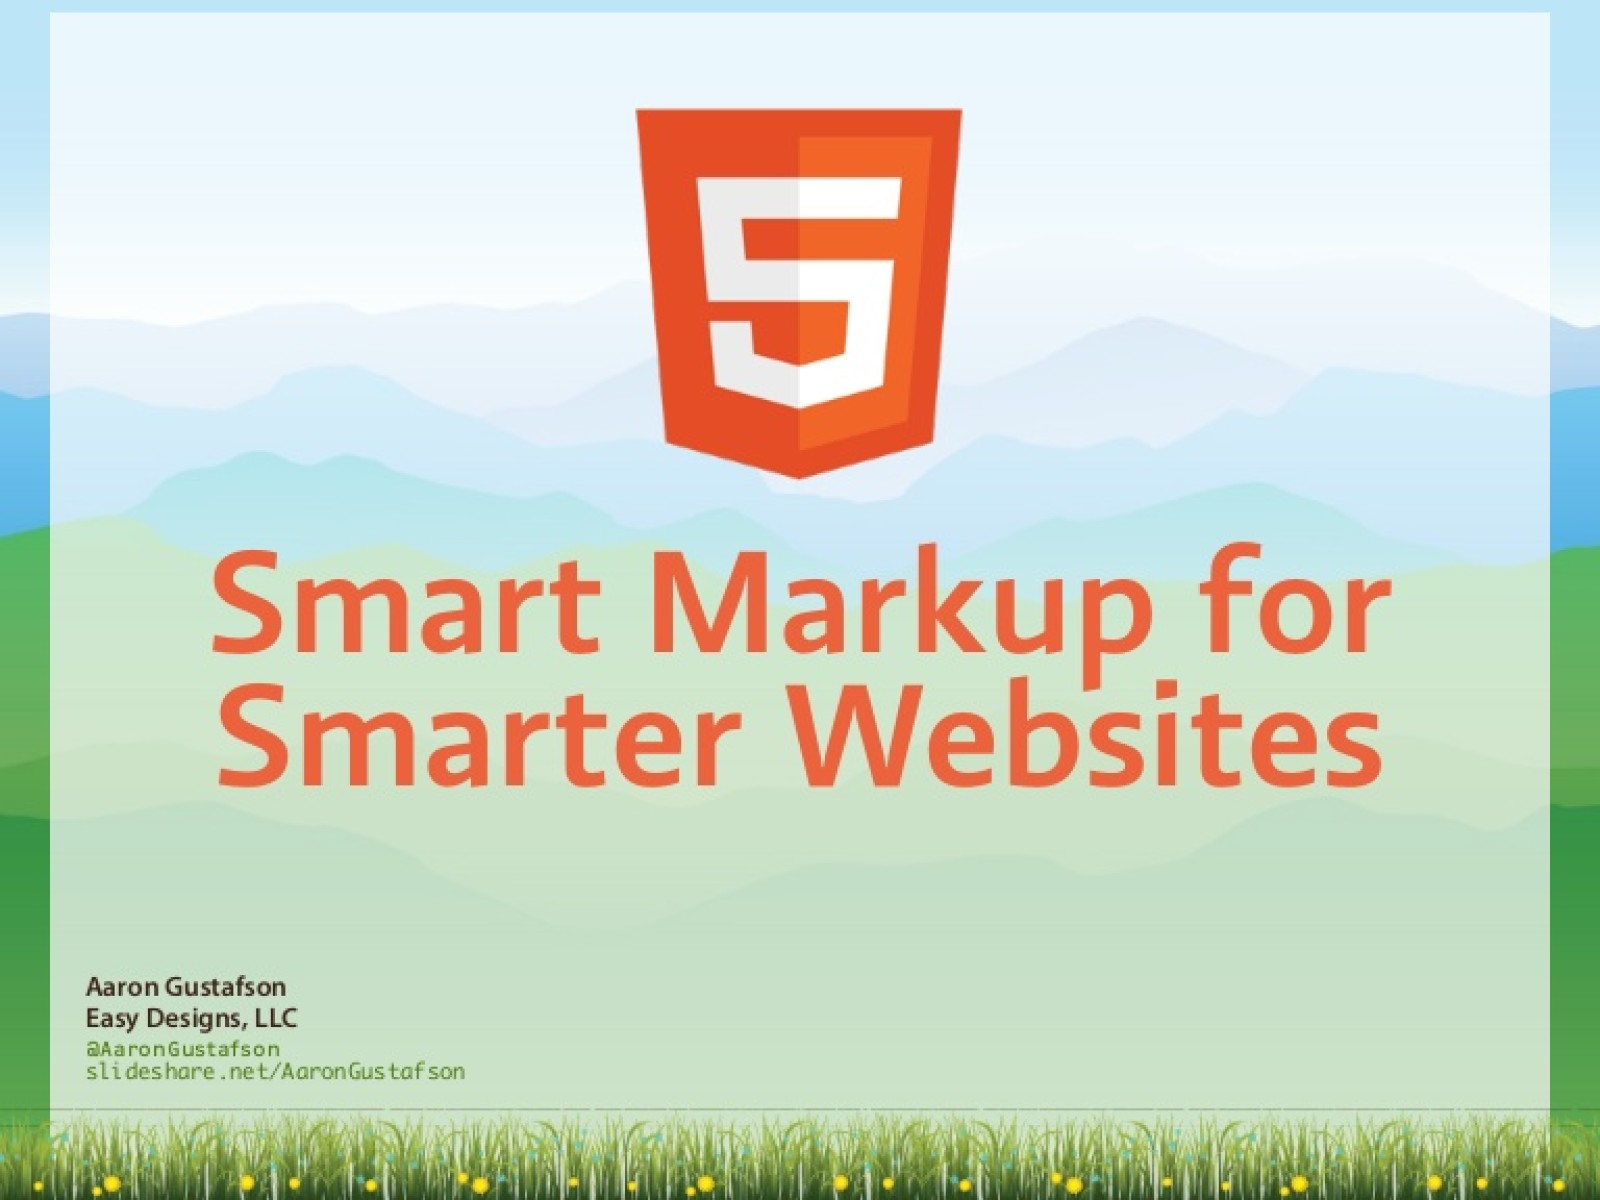 HTML5: Smart Markup for Smarter Websites